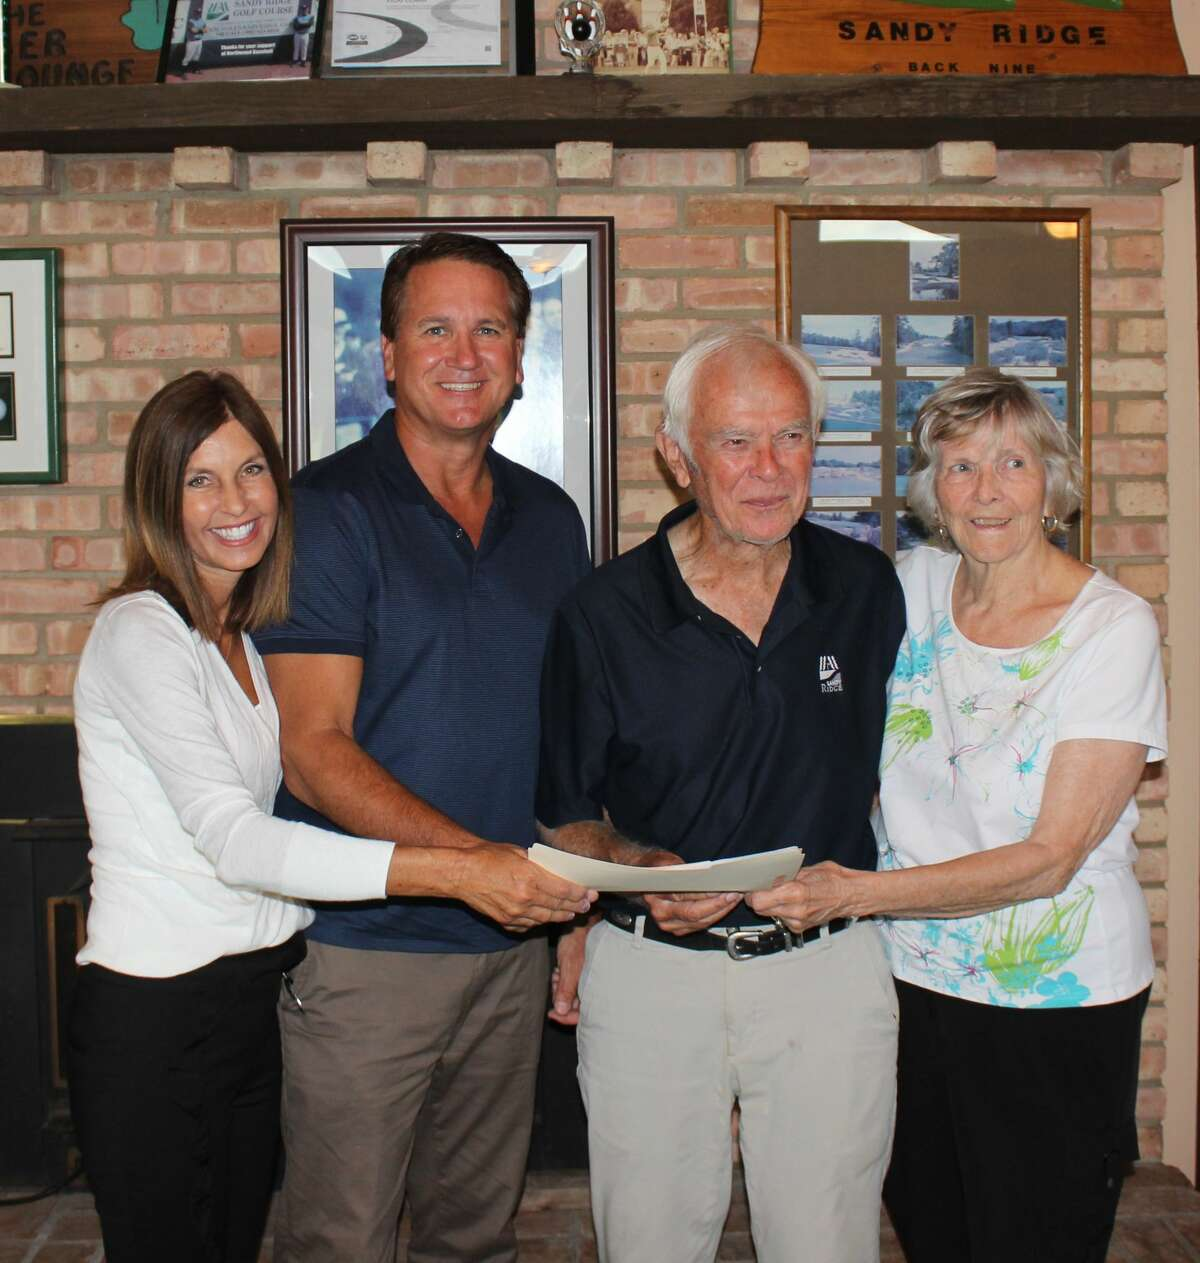 Luanne and Greg Grocholski (left) have purchased Sandy Ridge Golf Course from Ed and Patricia Clark (right) and are slated to take over operations of the facility soon.